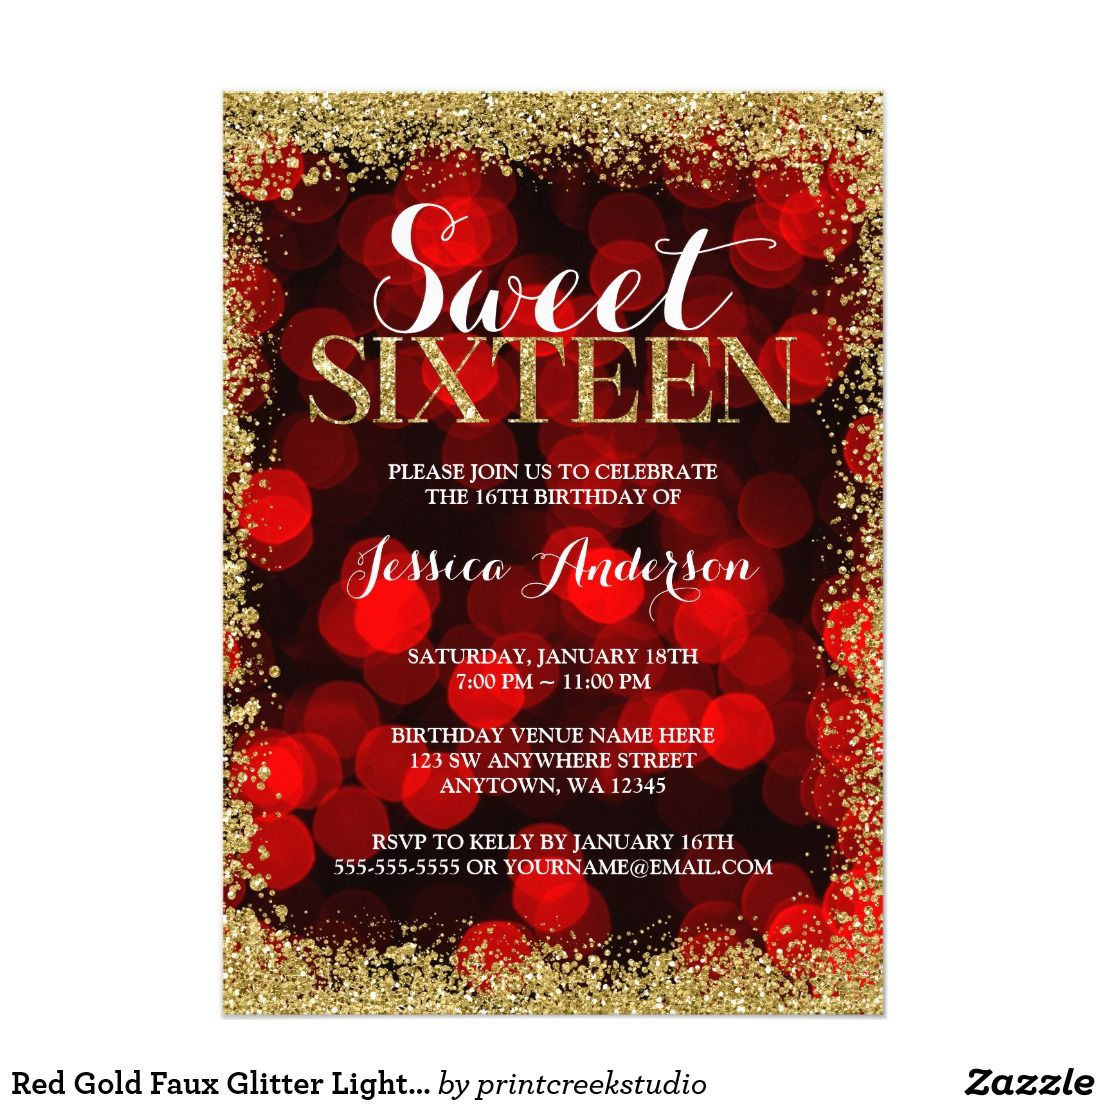 Red Gold Faux Glitter Lights Sweet 16 Birthday Card Celebrate in ...